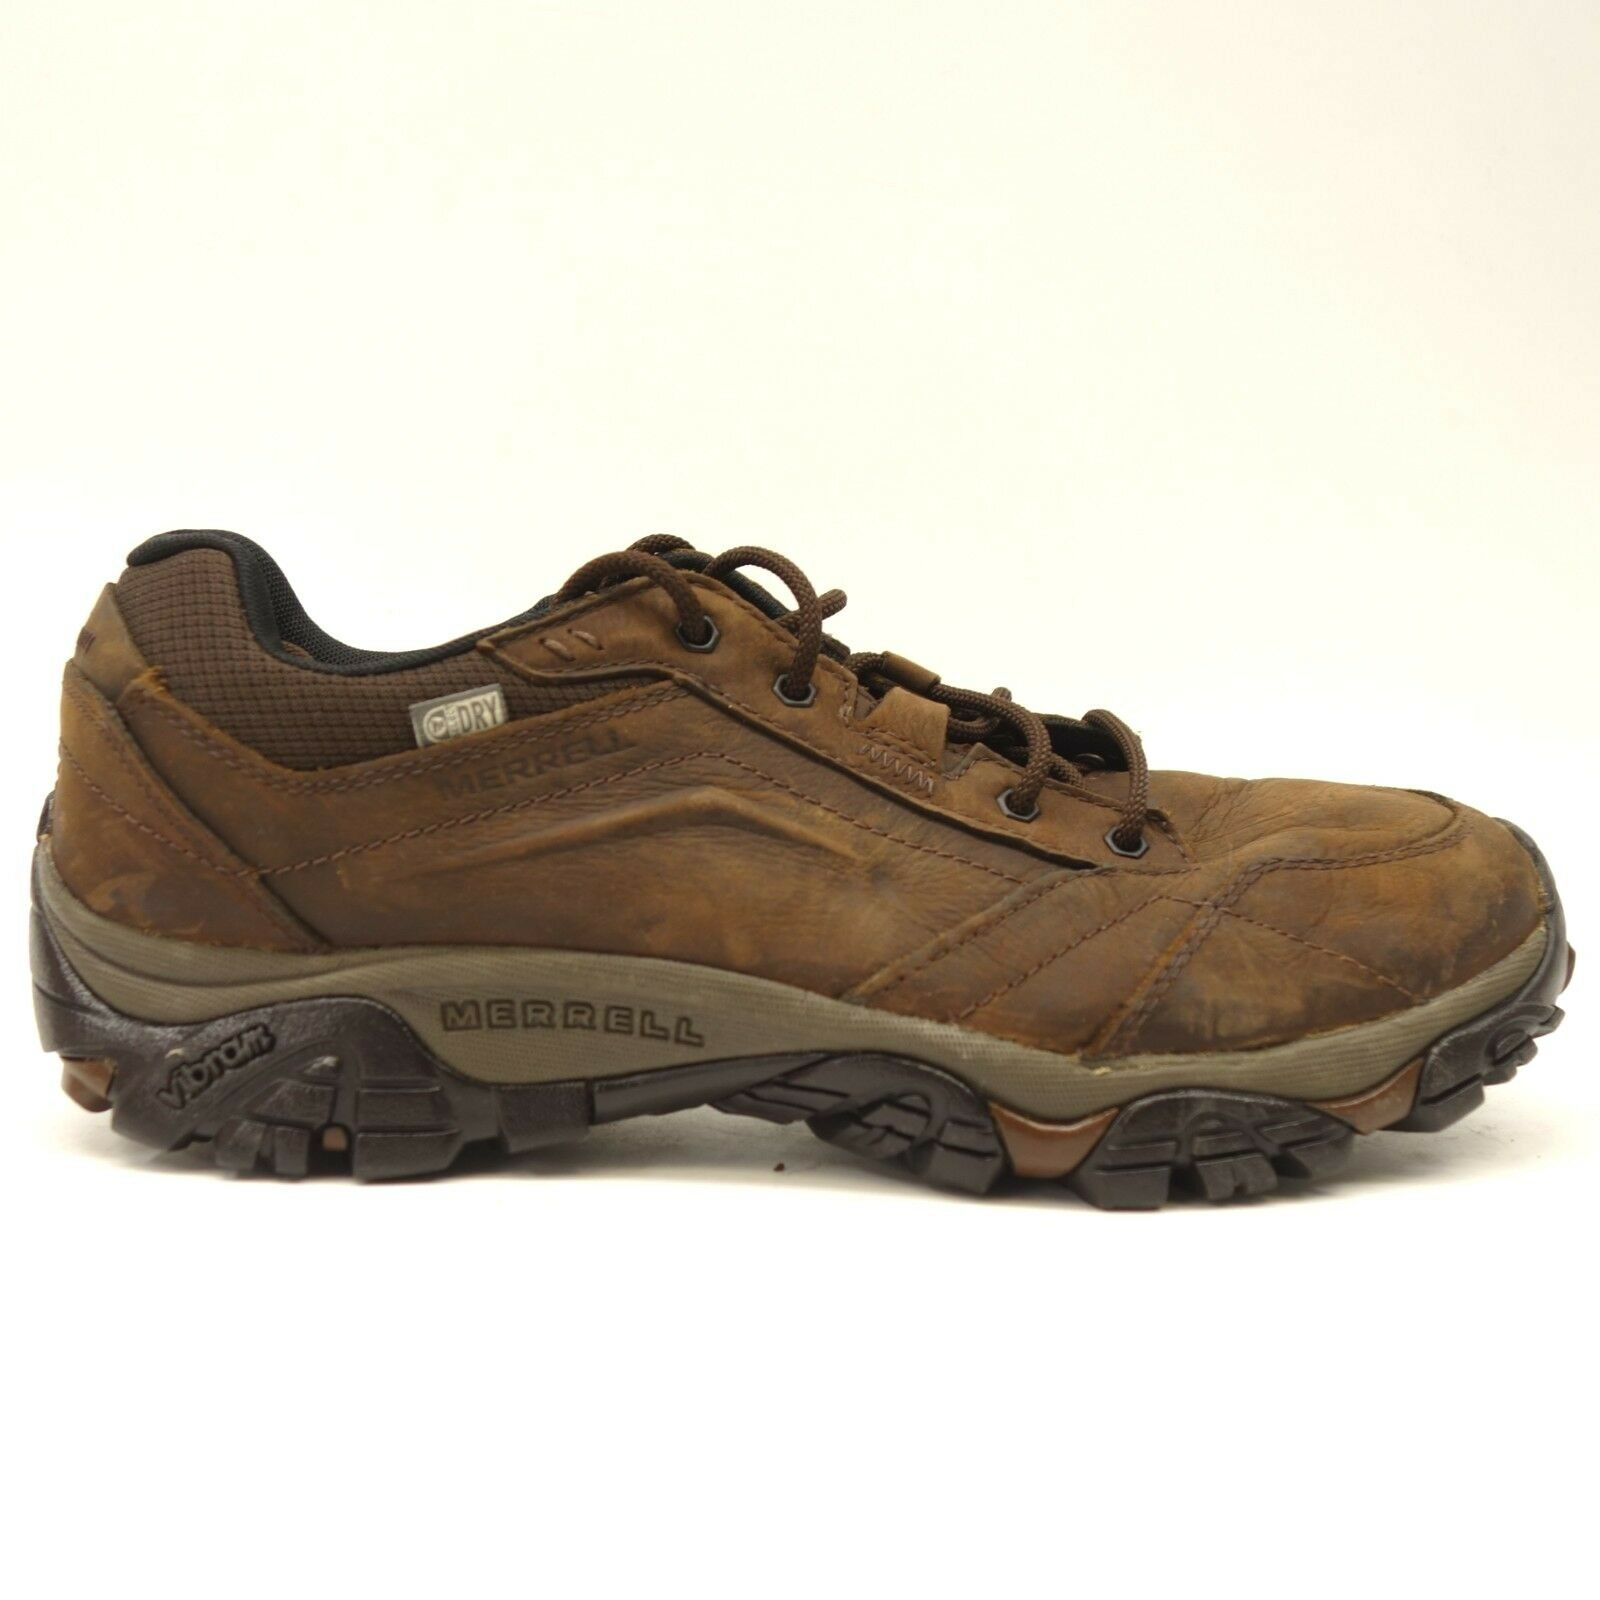 Merrell Uomo Moab Adventure Lace Waterproof Athletic Athletic Athletic Hiking Trail scarpe Dimensione 11 1468dc